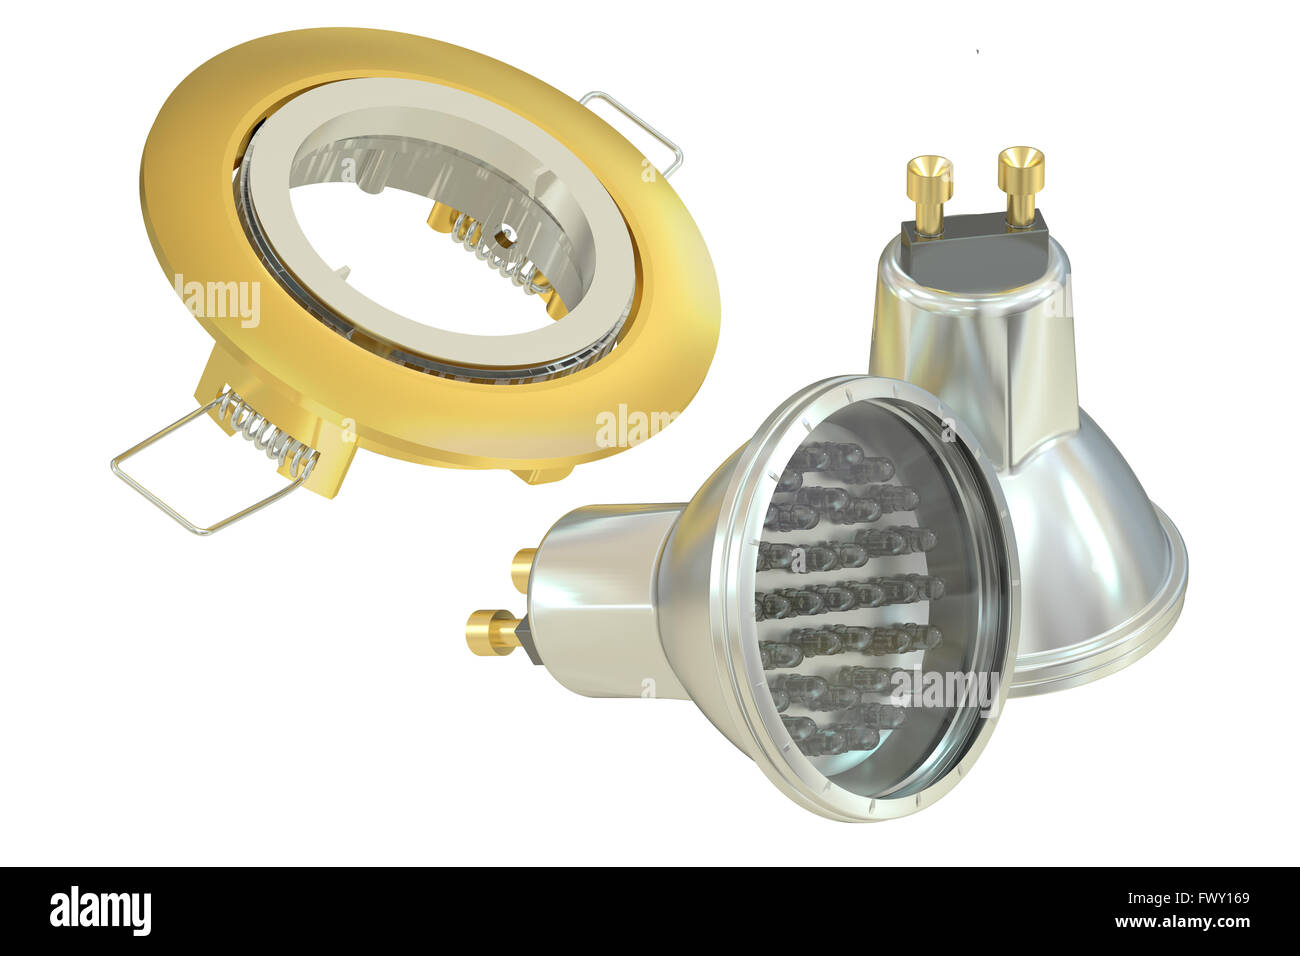 recessed light with LED (Light Emitting Diode) lamps, 3D rendering - Stock Image